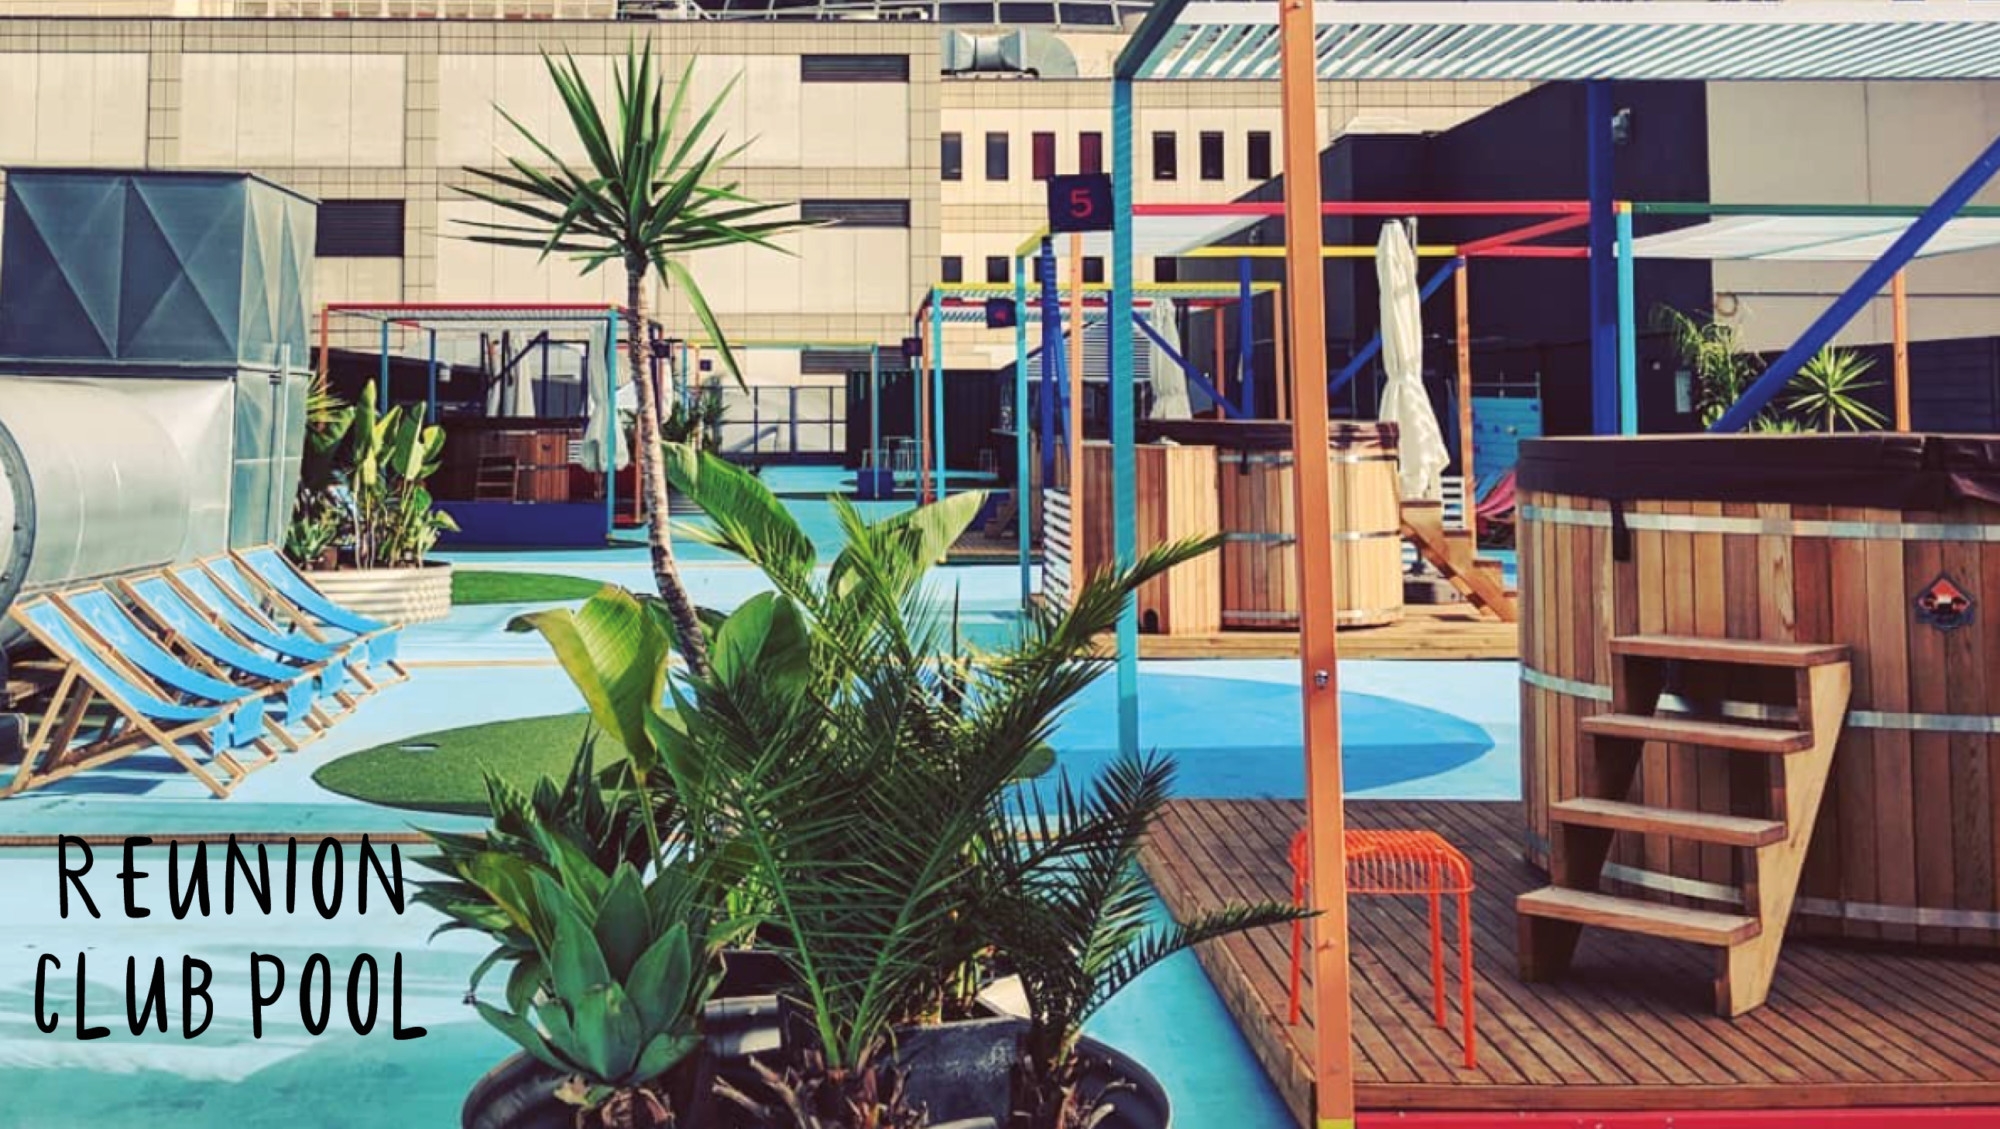 rooftop bar pool club palm trees in melbourne australia